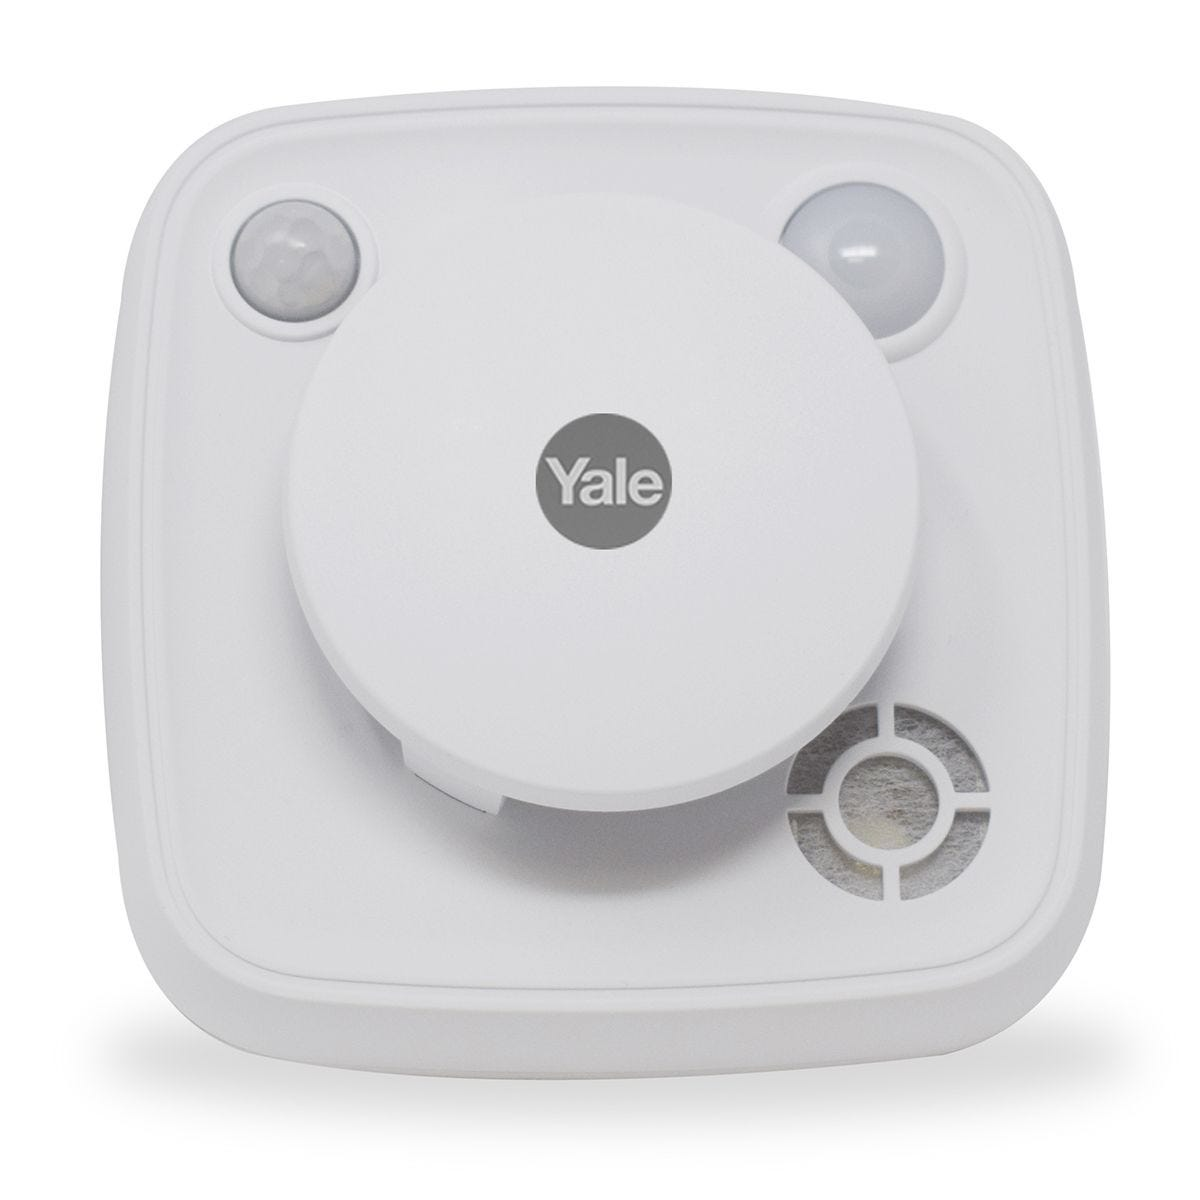 Yale Heat and smoke detector with PIR motion detector - Smart Alarm